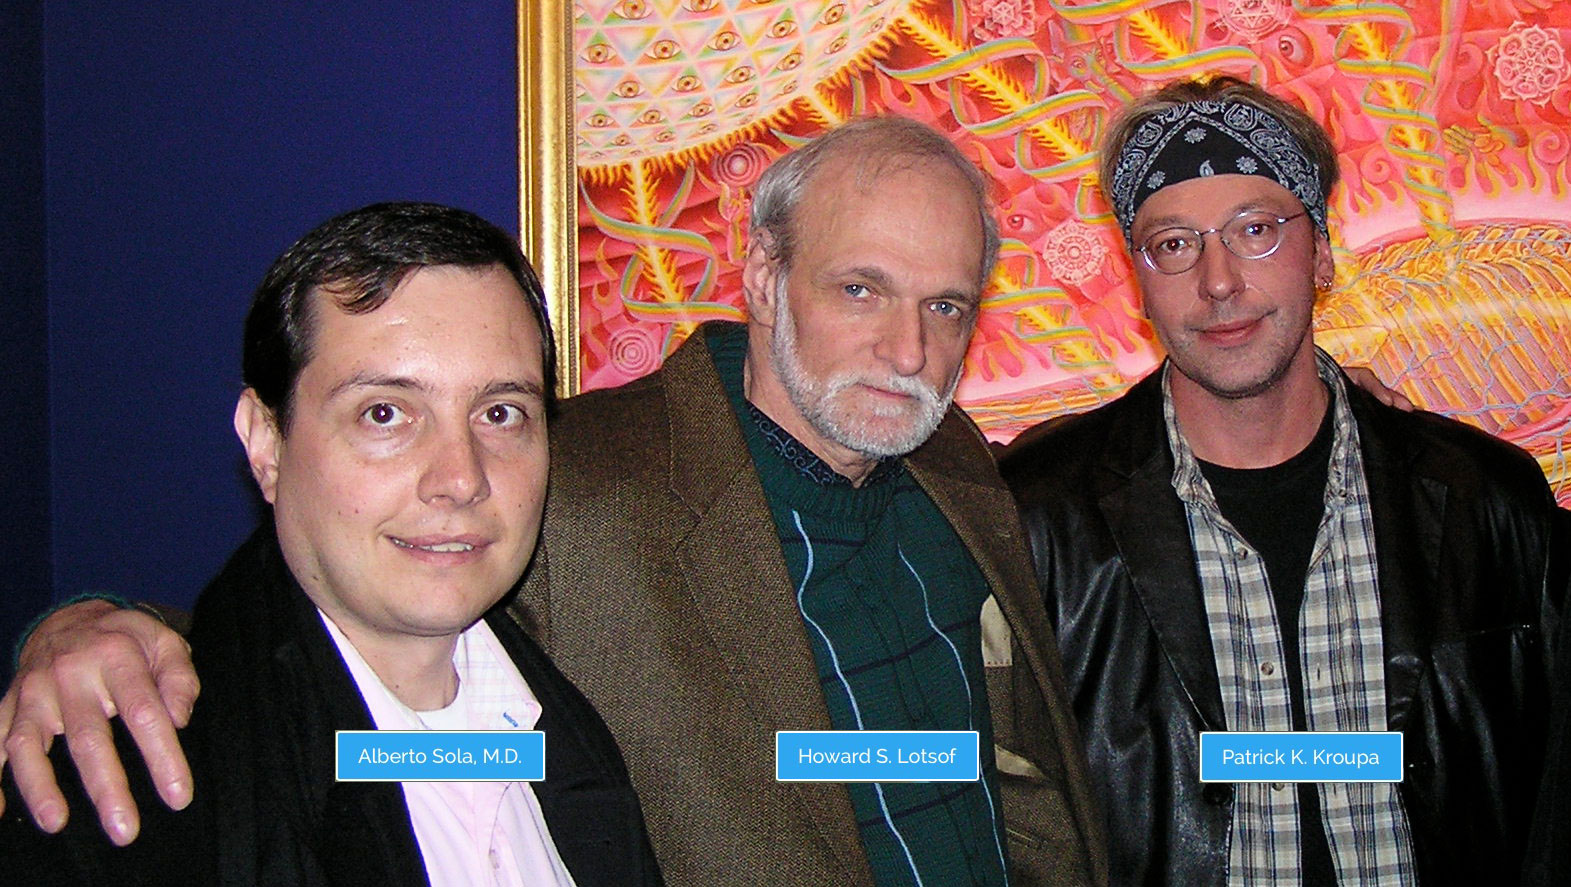 Dr. Alberto Solà, Howard S. Lotsof & Patrick K. Kroupa. Painting by Alex Grey.